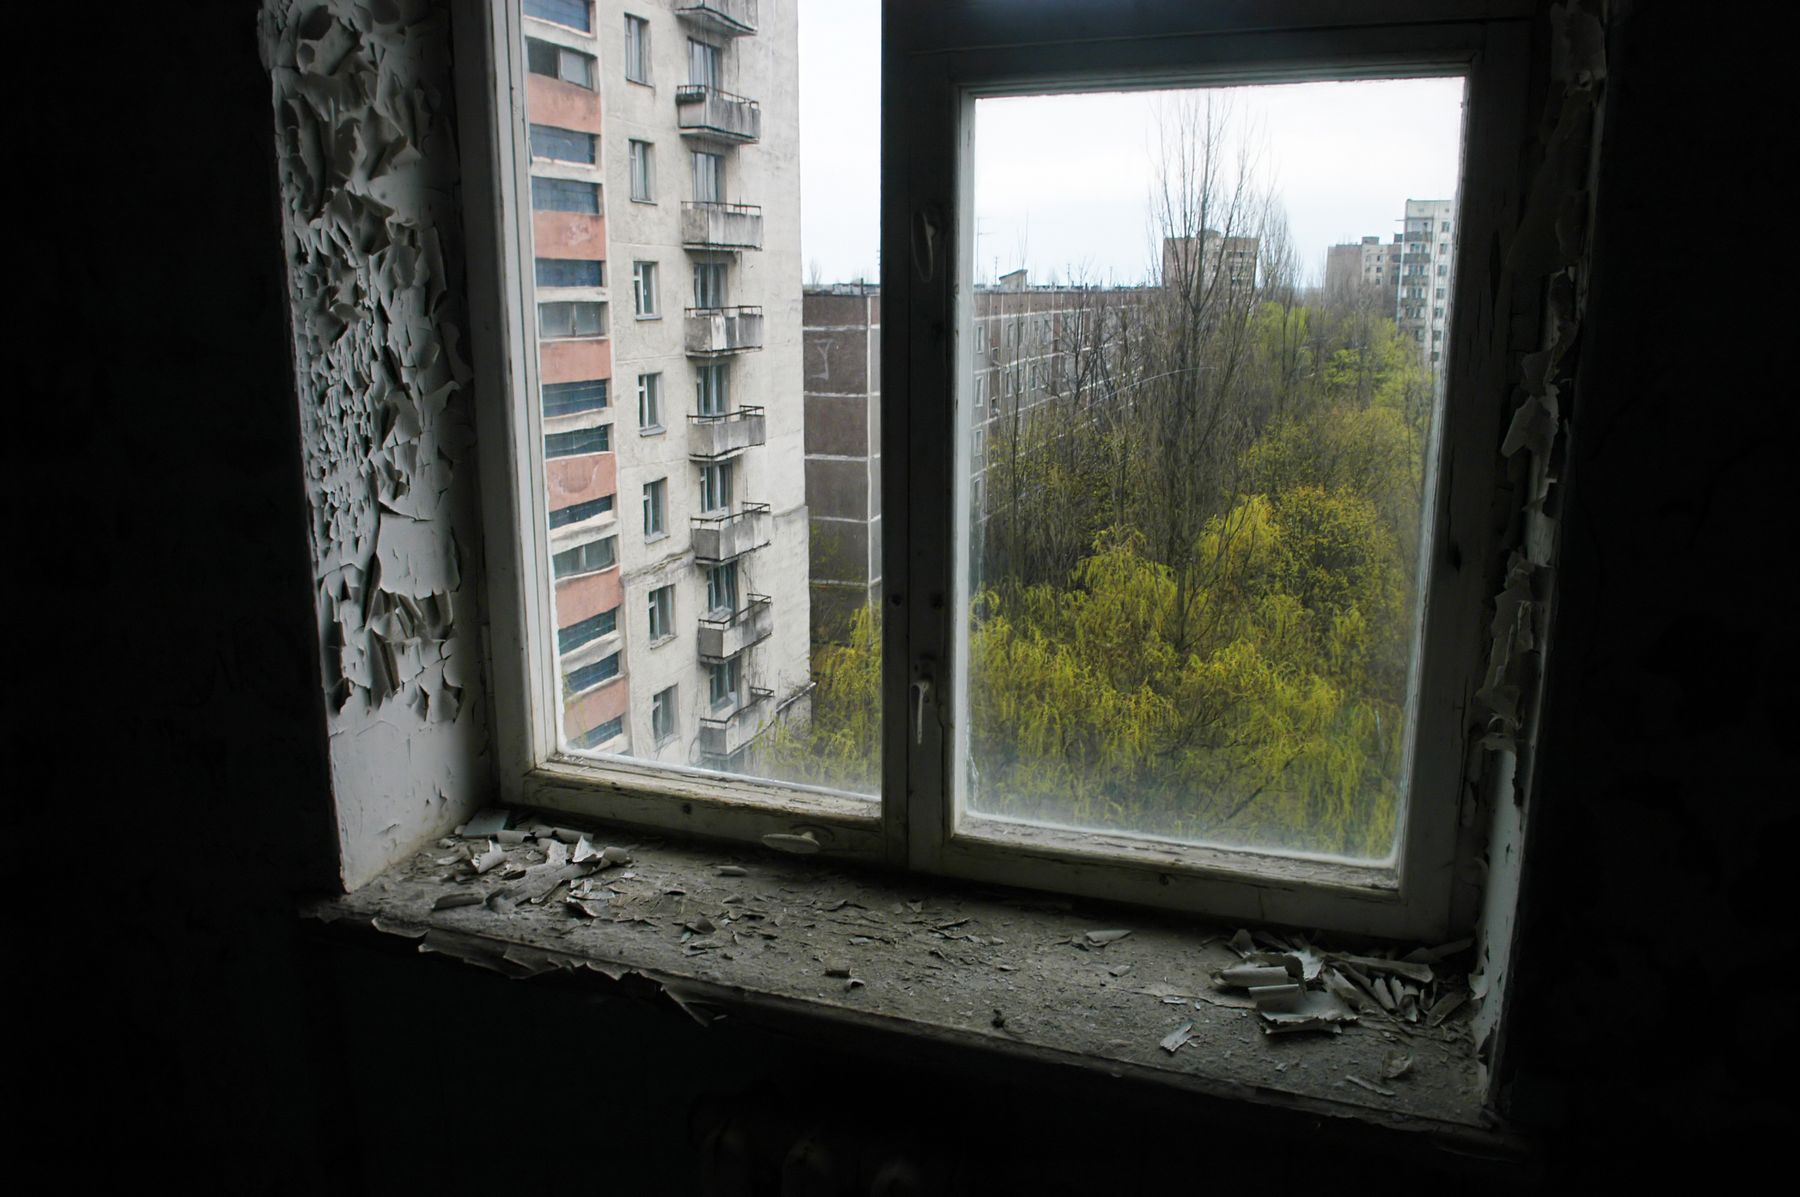 Pripyat, Ukraine overtaken by nature after Chernobyl Nuclear Plant disaster